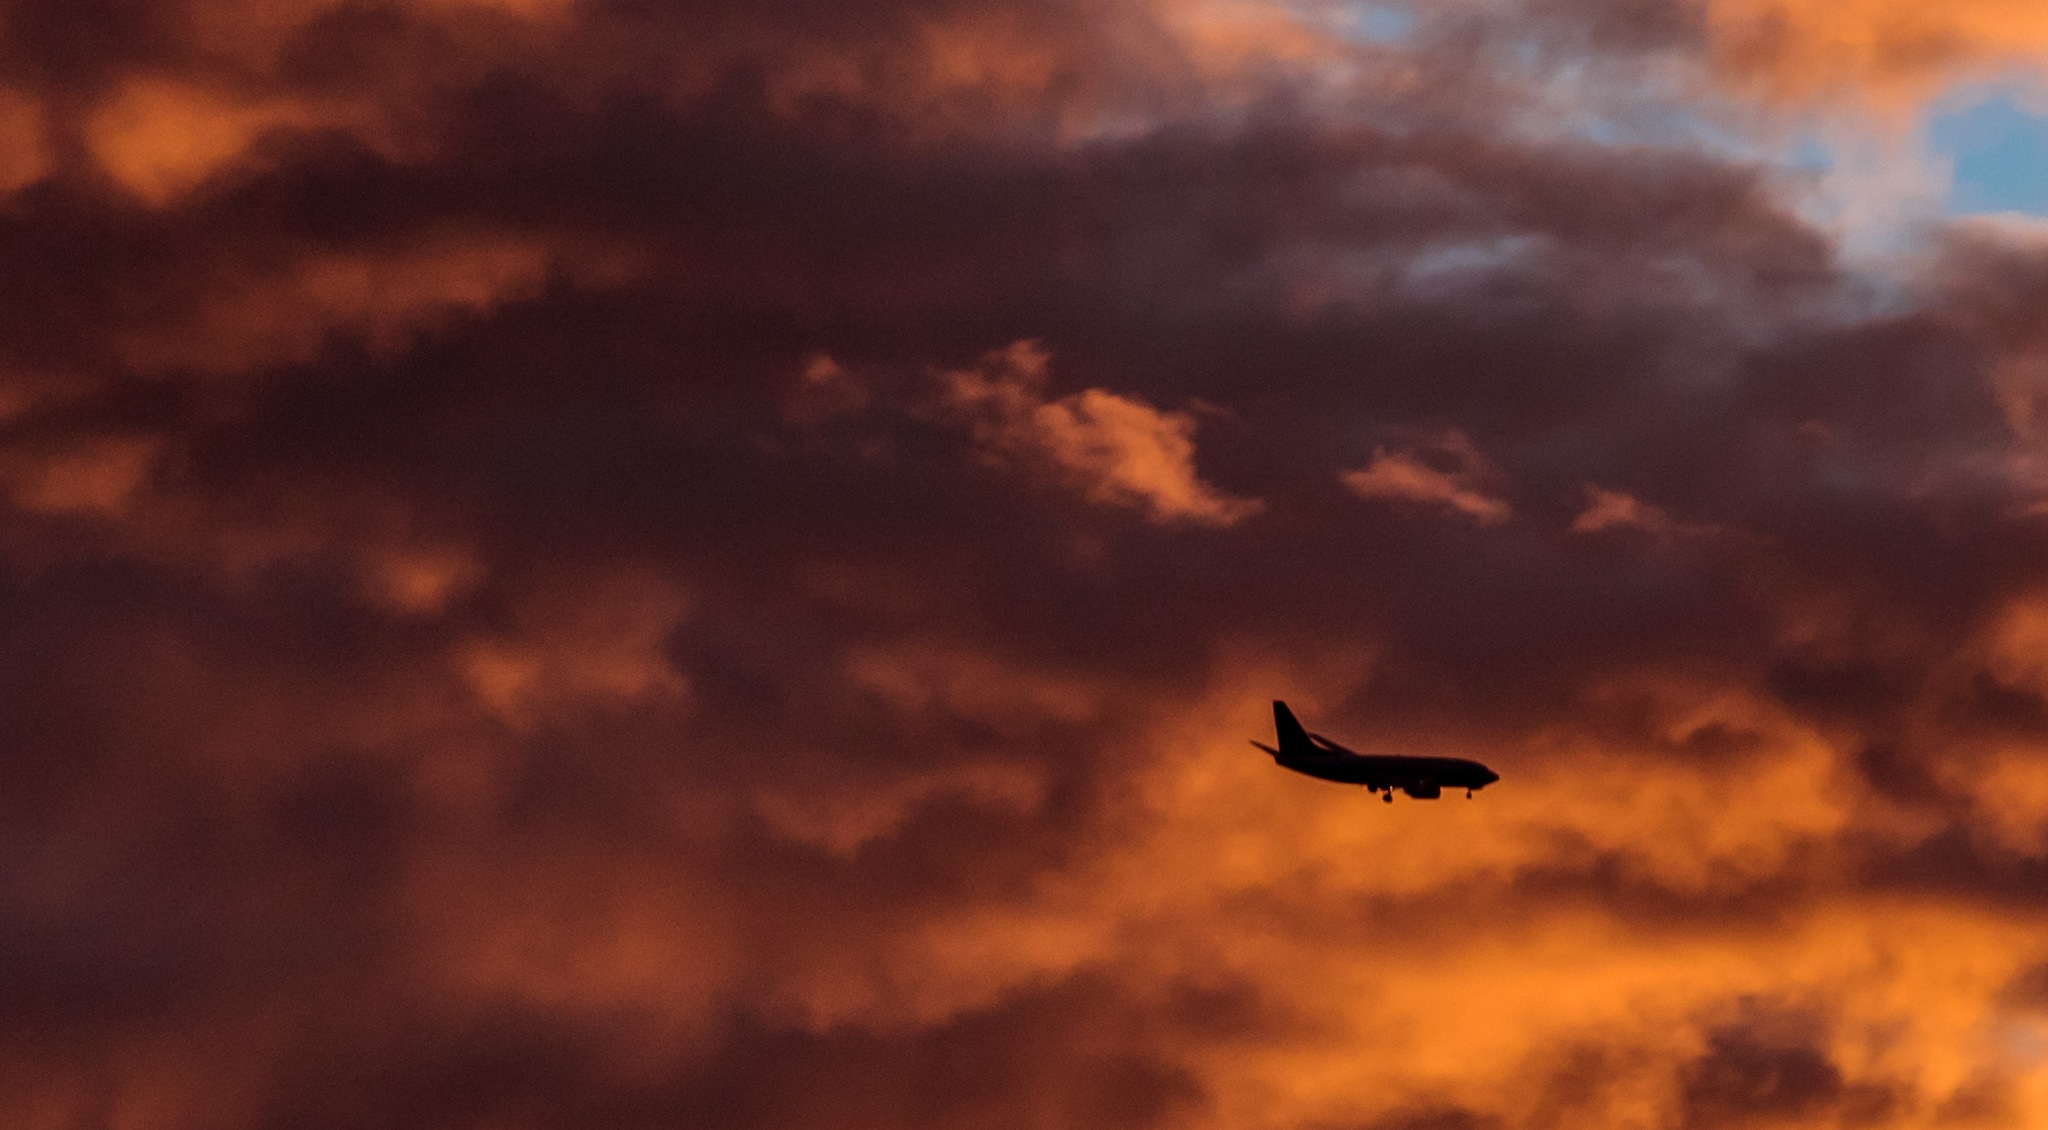 Airplane in fire clouds by Roger Indgul